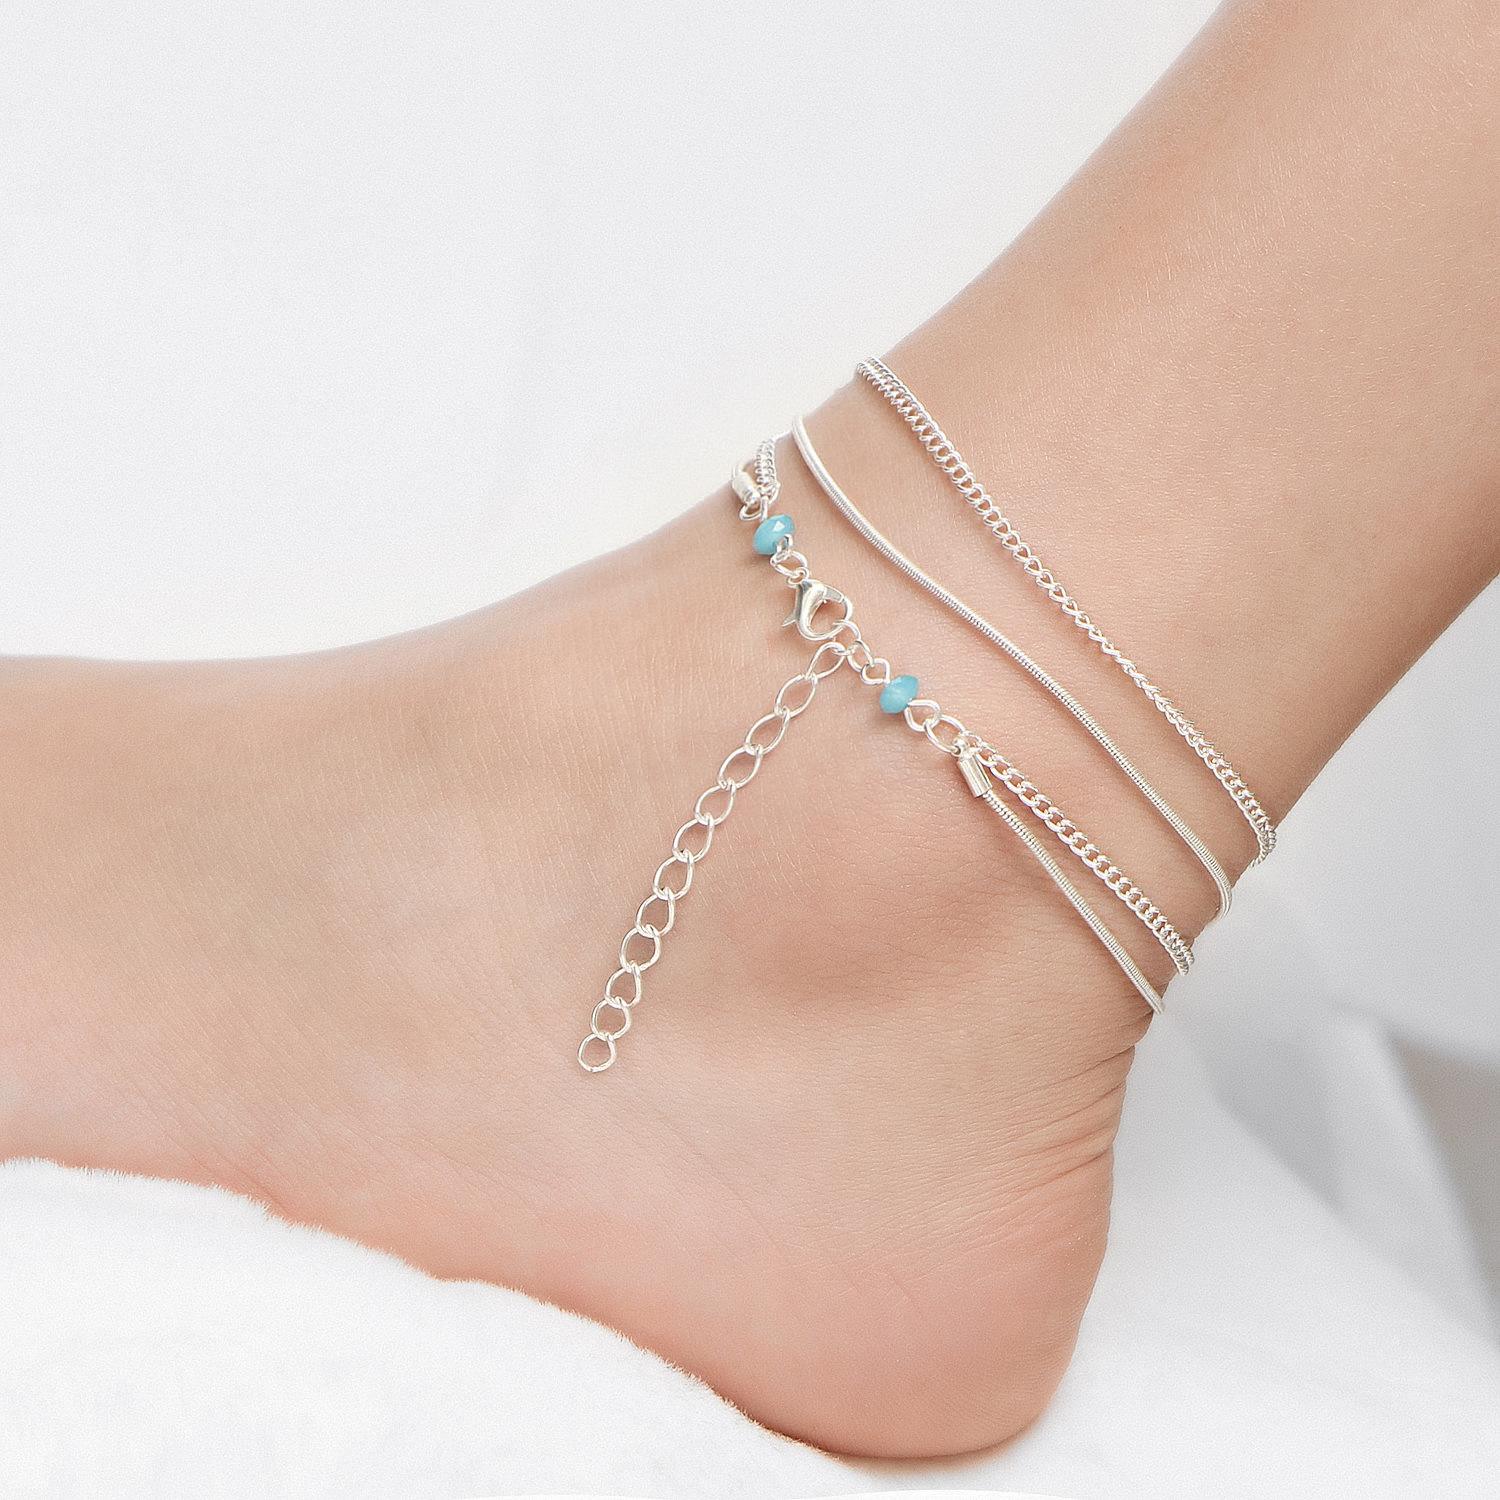 anklet orders jewelry hum healing om watches shipping product padme cuff over overstock free nepal mani on handmade